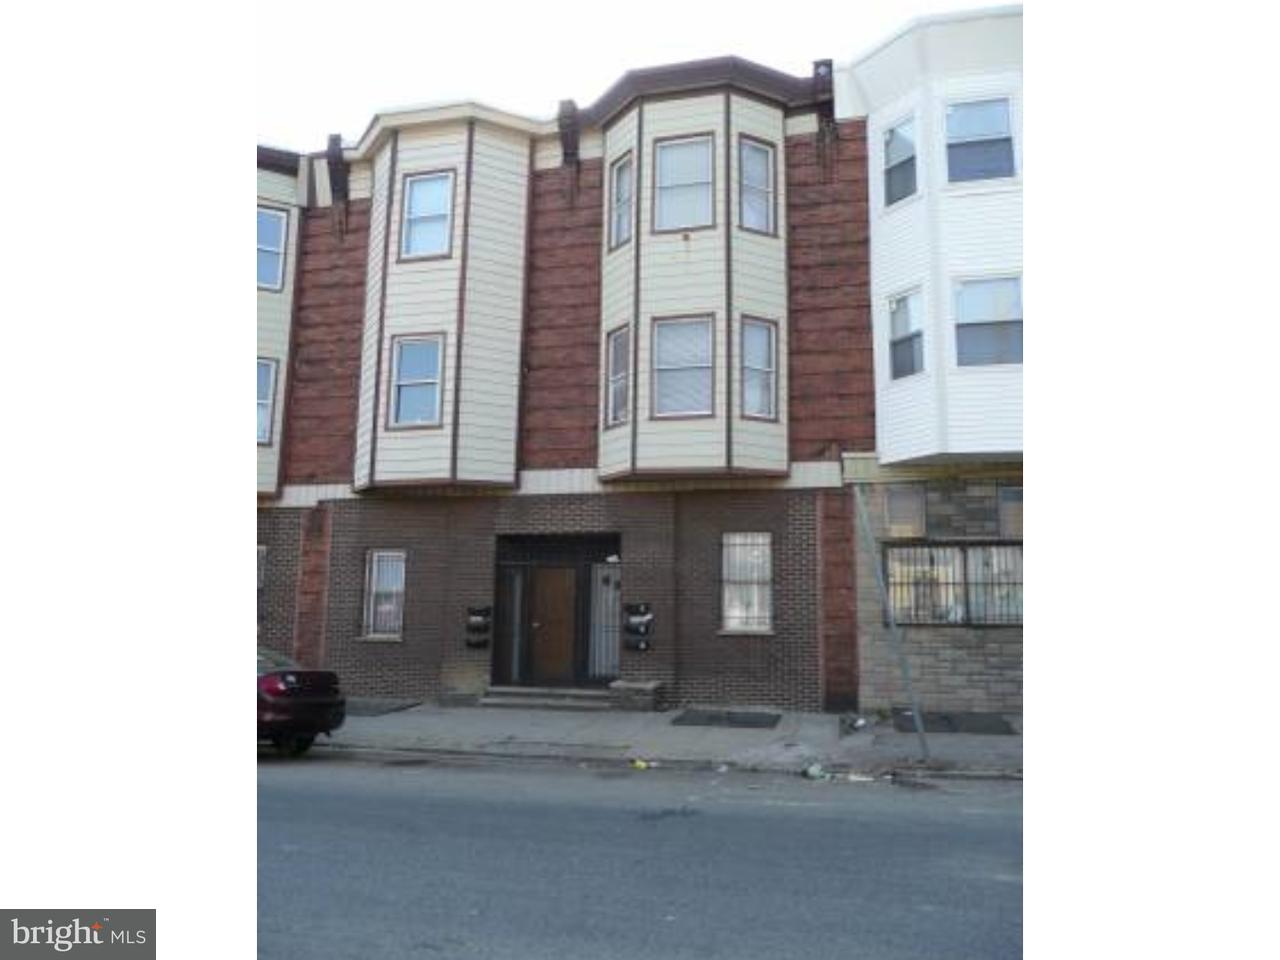 220 N 54TH Philadelphia, PA 19139